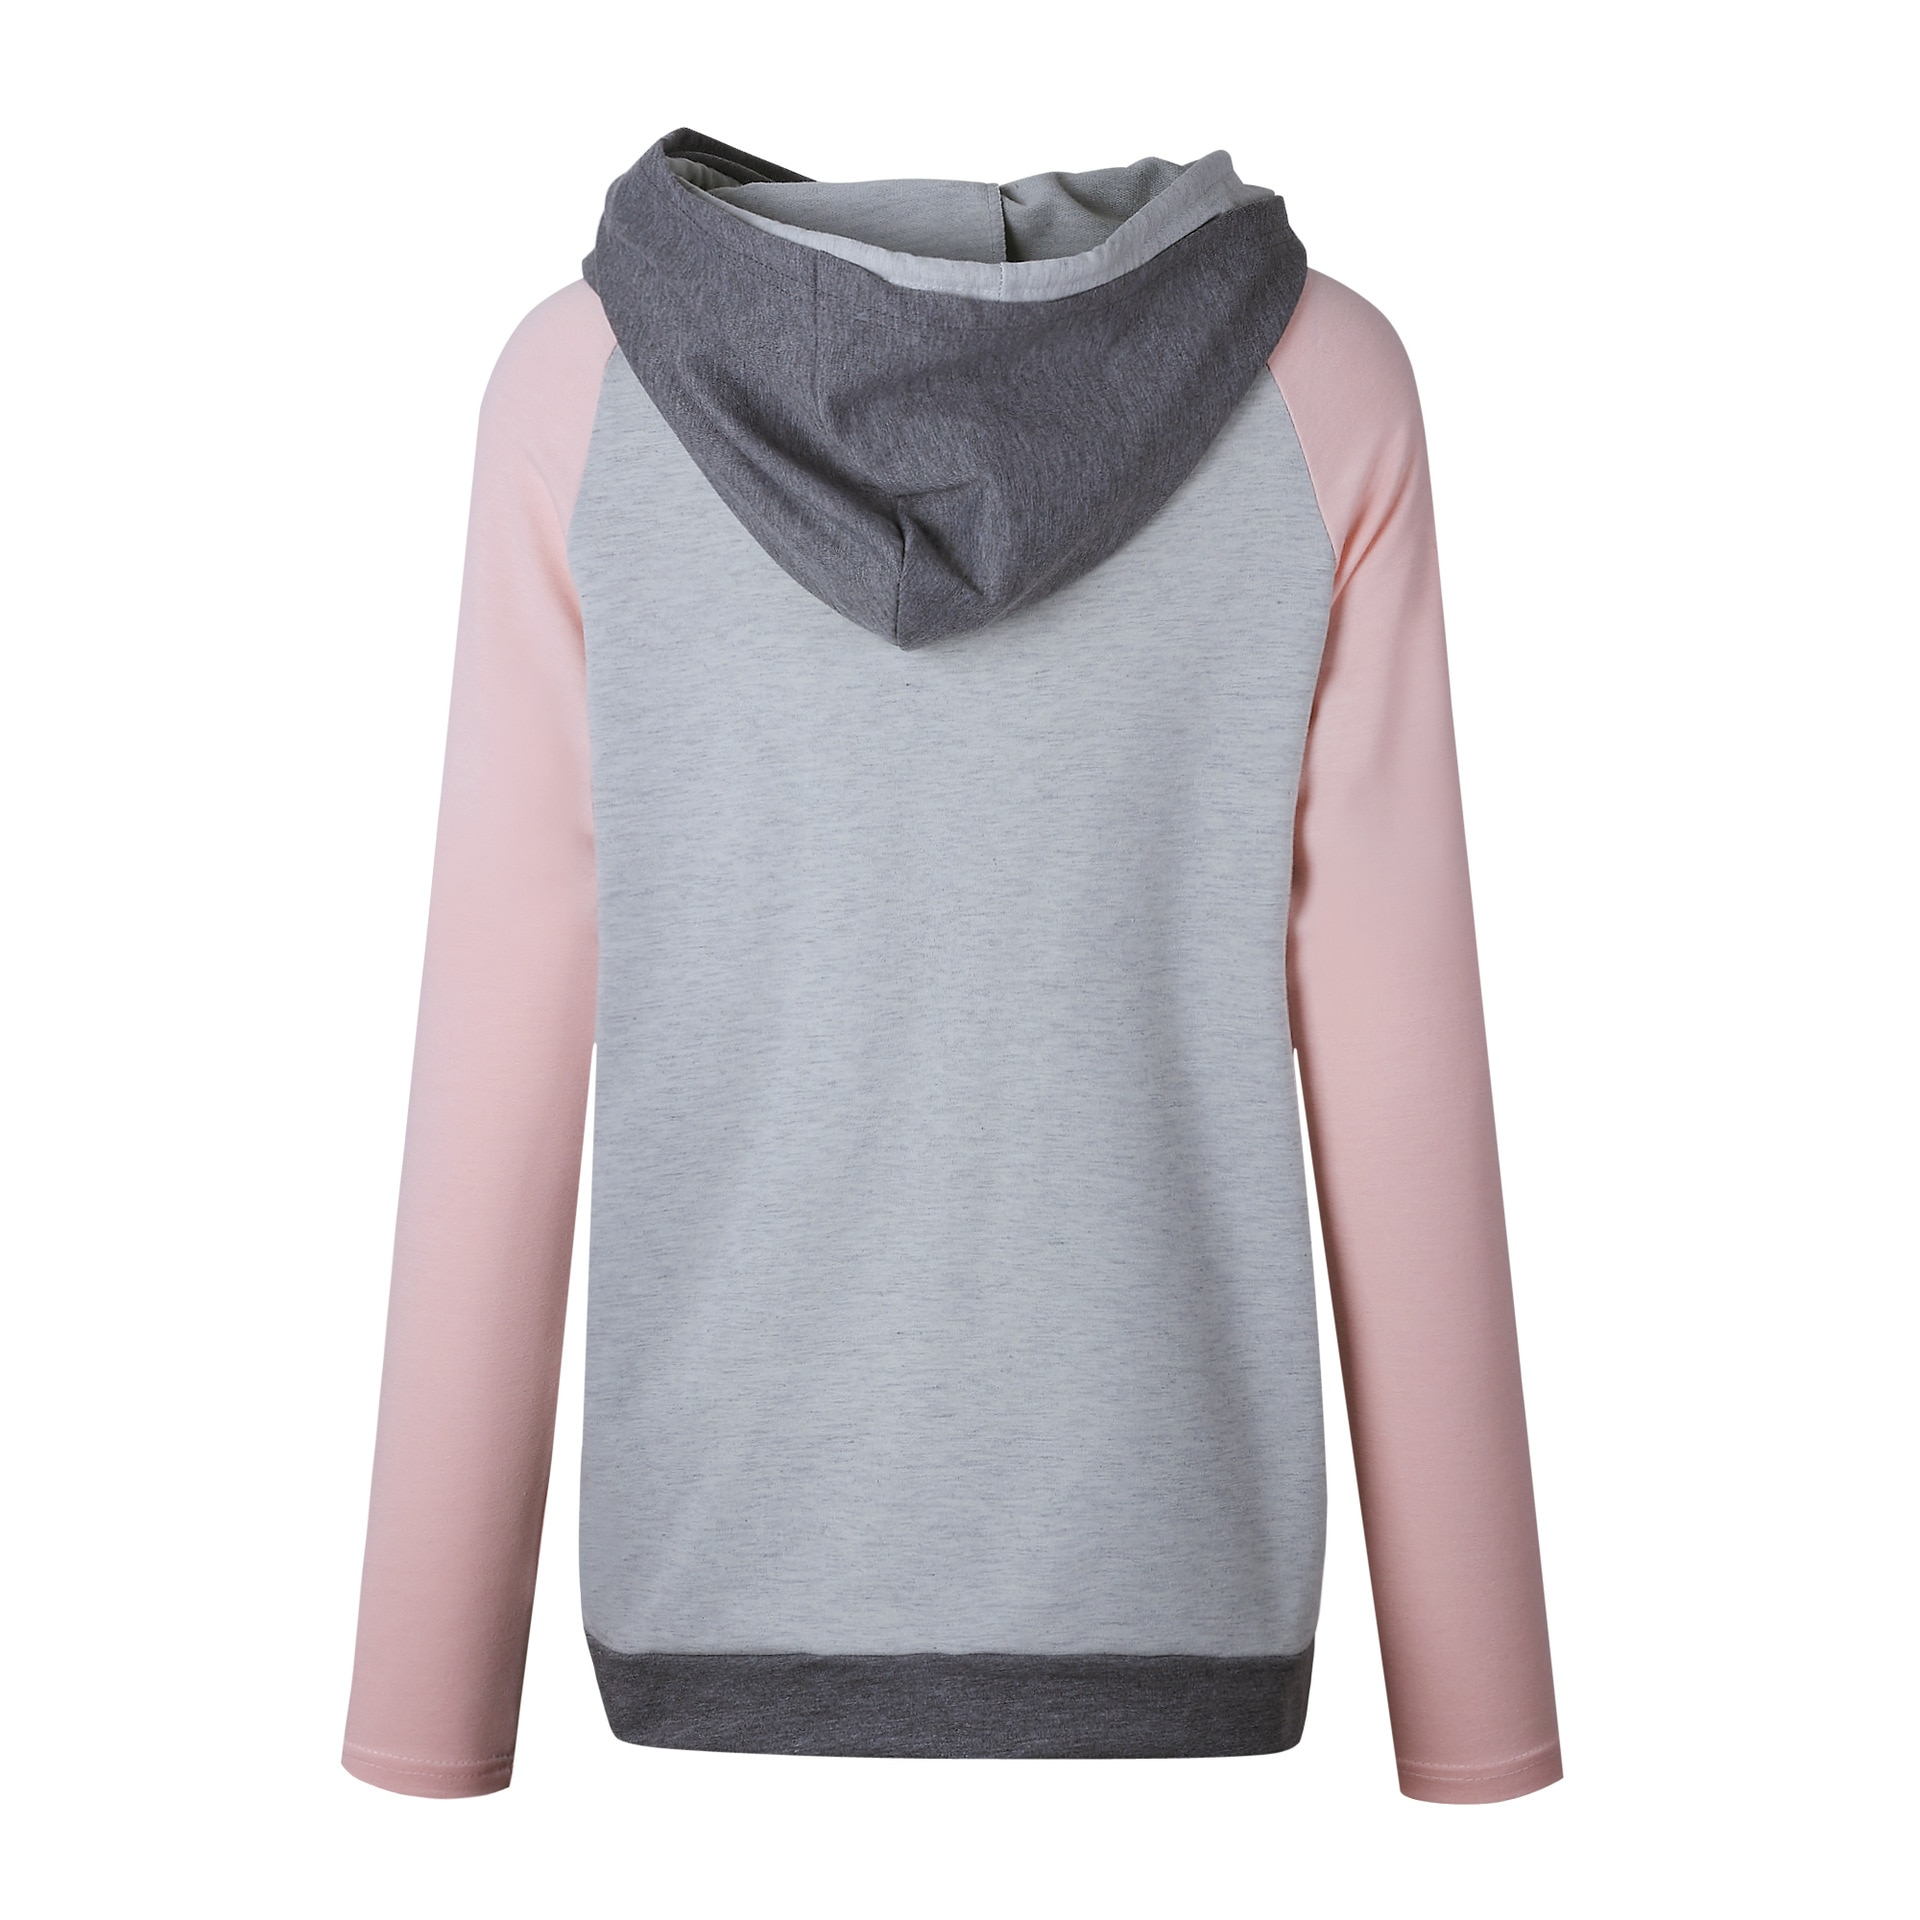 Women's Patchwork Striped Pullover Long Sleeve Hoodie, Tops With Pockets, Hooded Sweatshirt 57